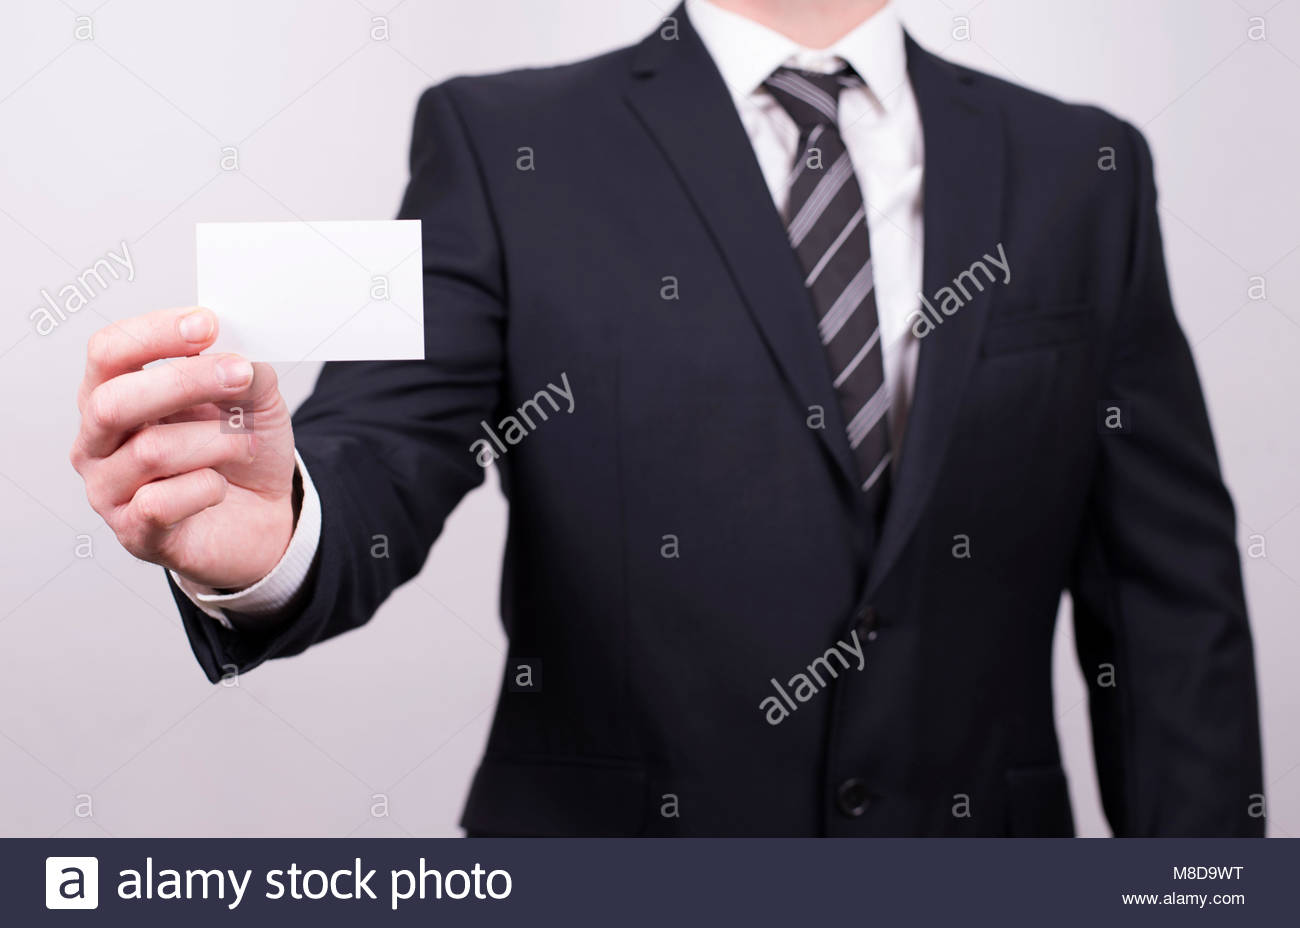 Man Holding Menu Card Stock Photos & Man Holding Menu Card Stock ...